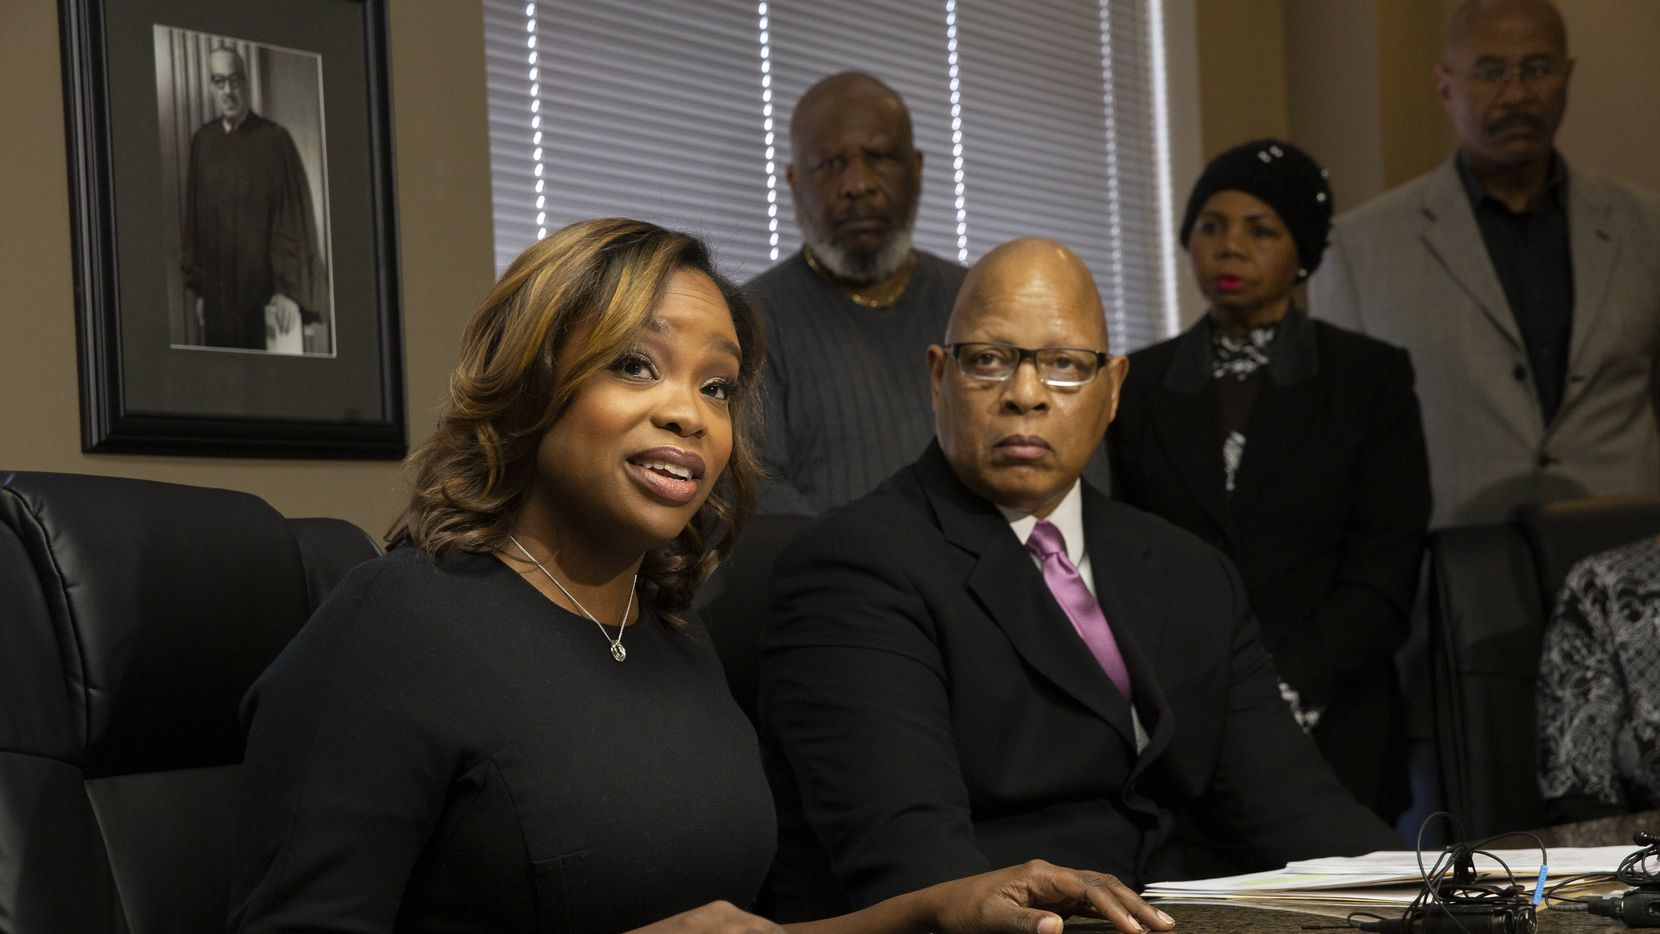 DeSoto councilwoman Candice Quarles held a brief press conference Thursday to announce she would not be stepping down, despite calls for her resignation. At right is her attorney Anthony Lyons. (Juan Figueroa/ The Dallas Morning News)